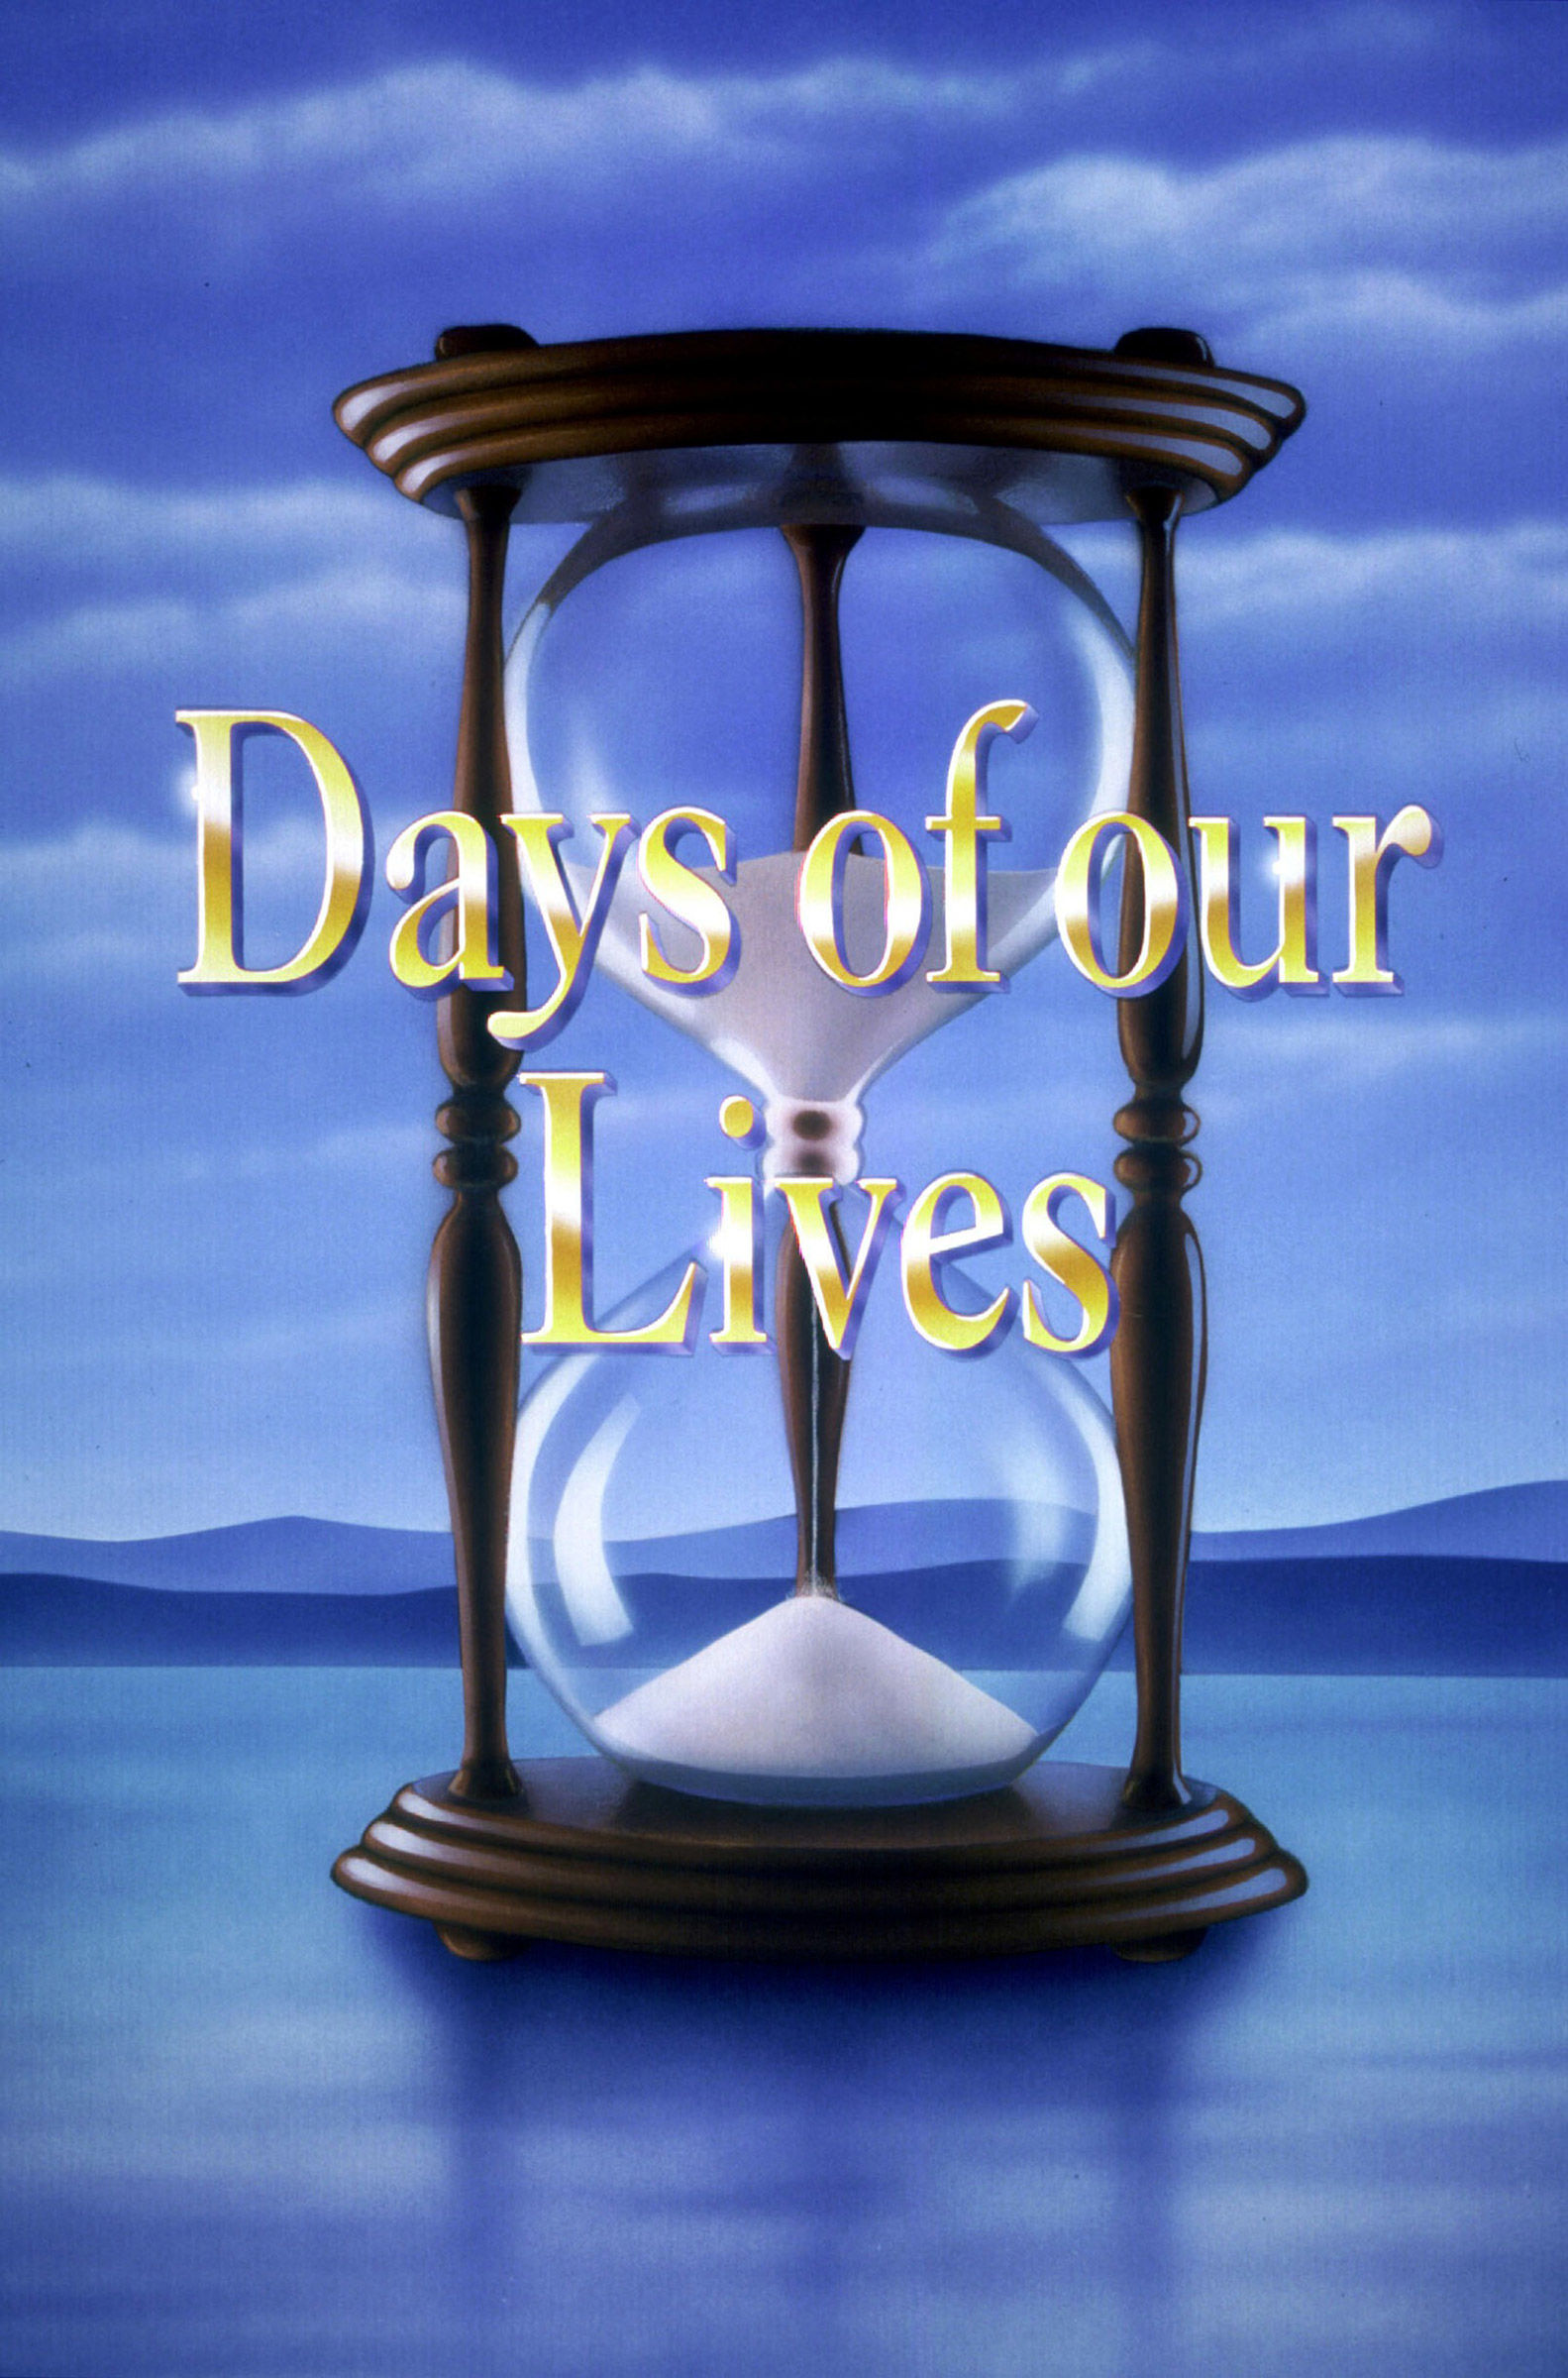 Days of Our Lives ne zaman